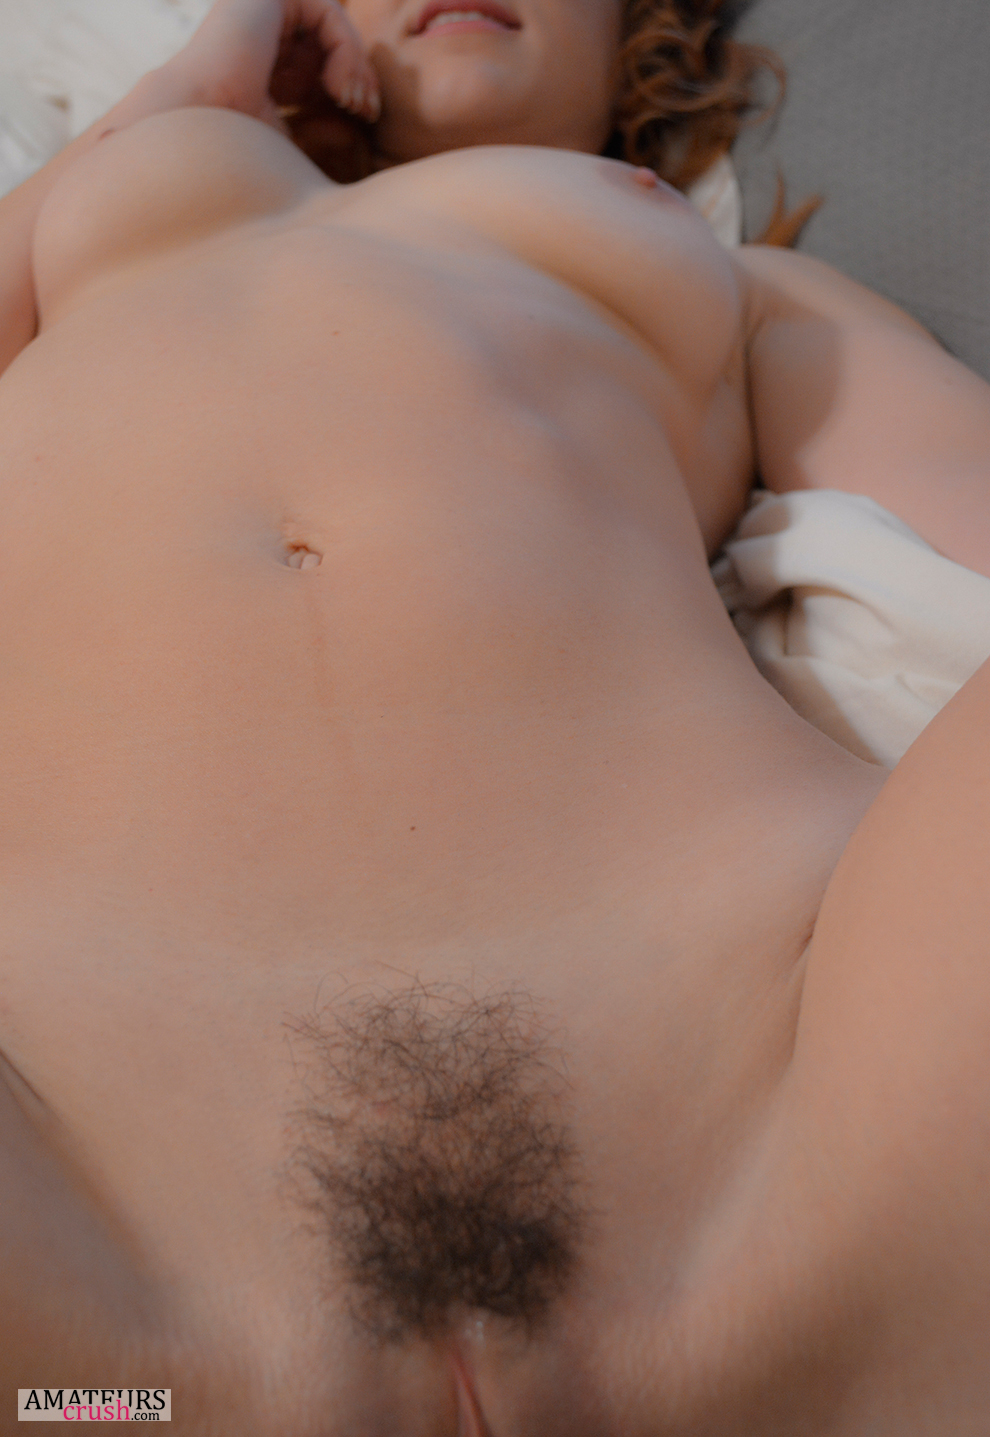 Upclose pictures of naked wifes — photo 2